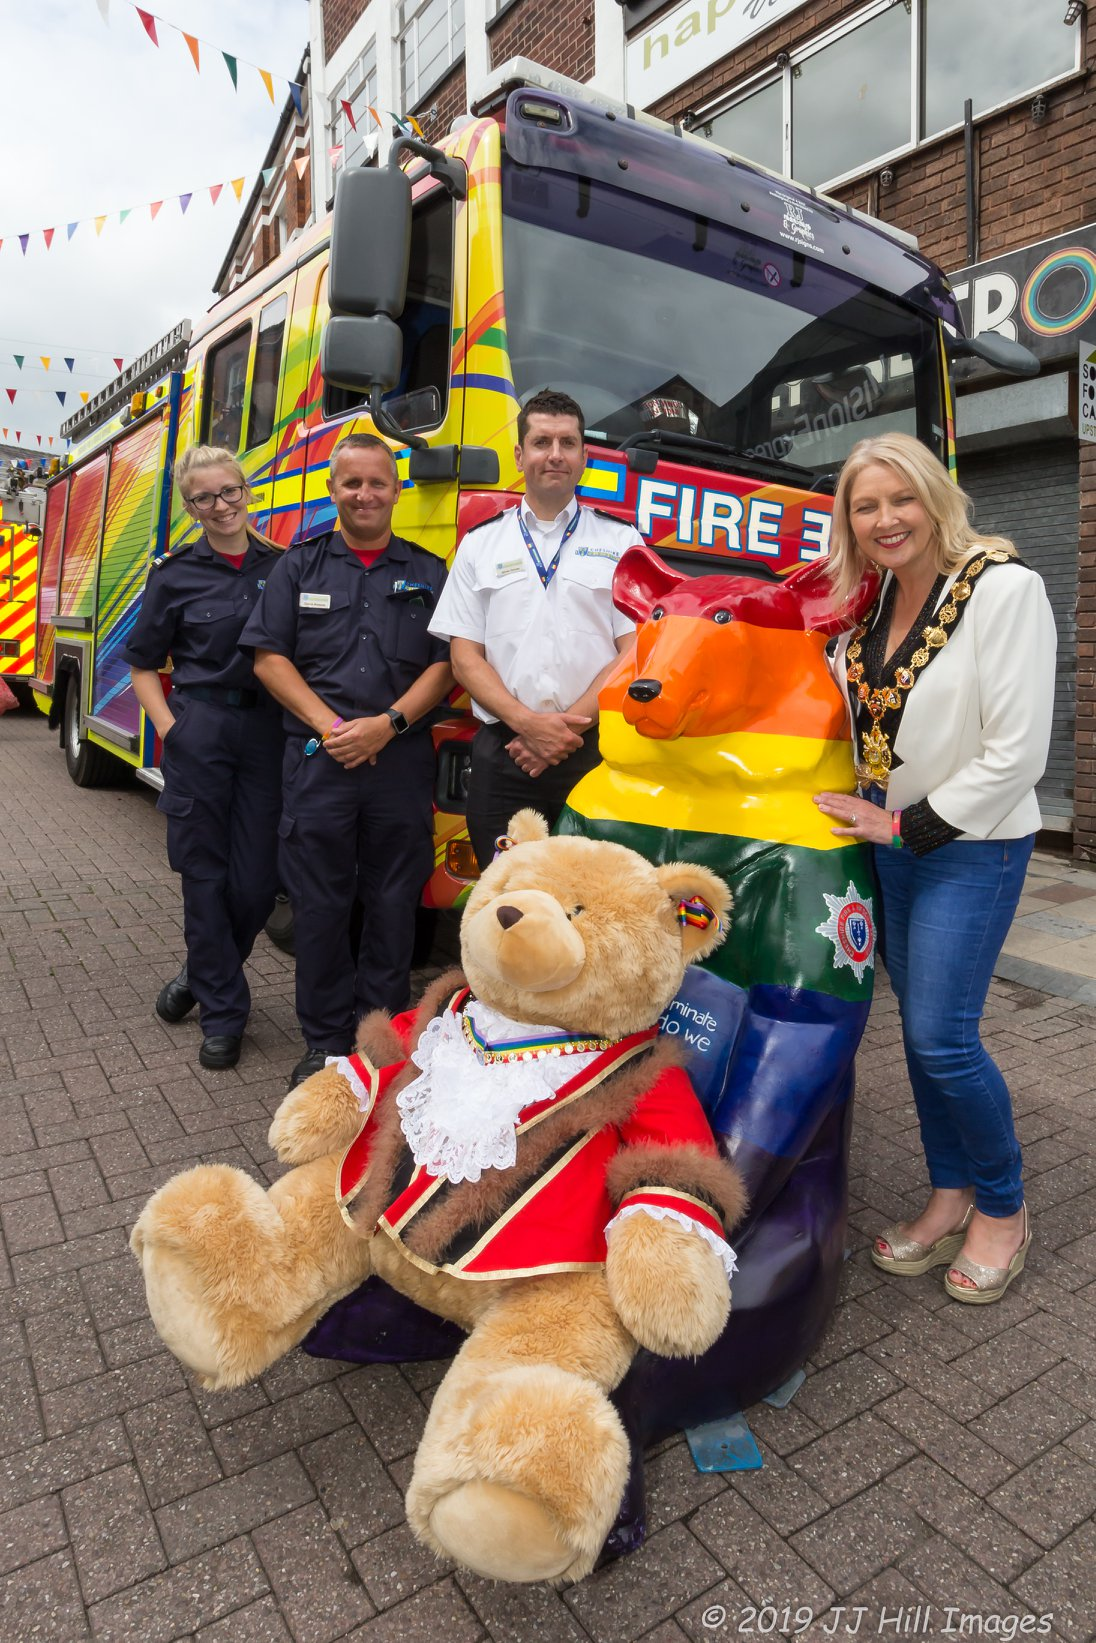 The Mayor Bear and the real Mayor - with pride ambulance